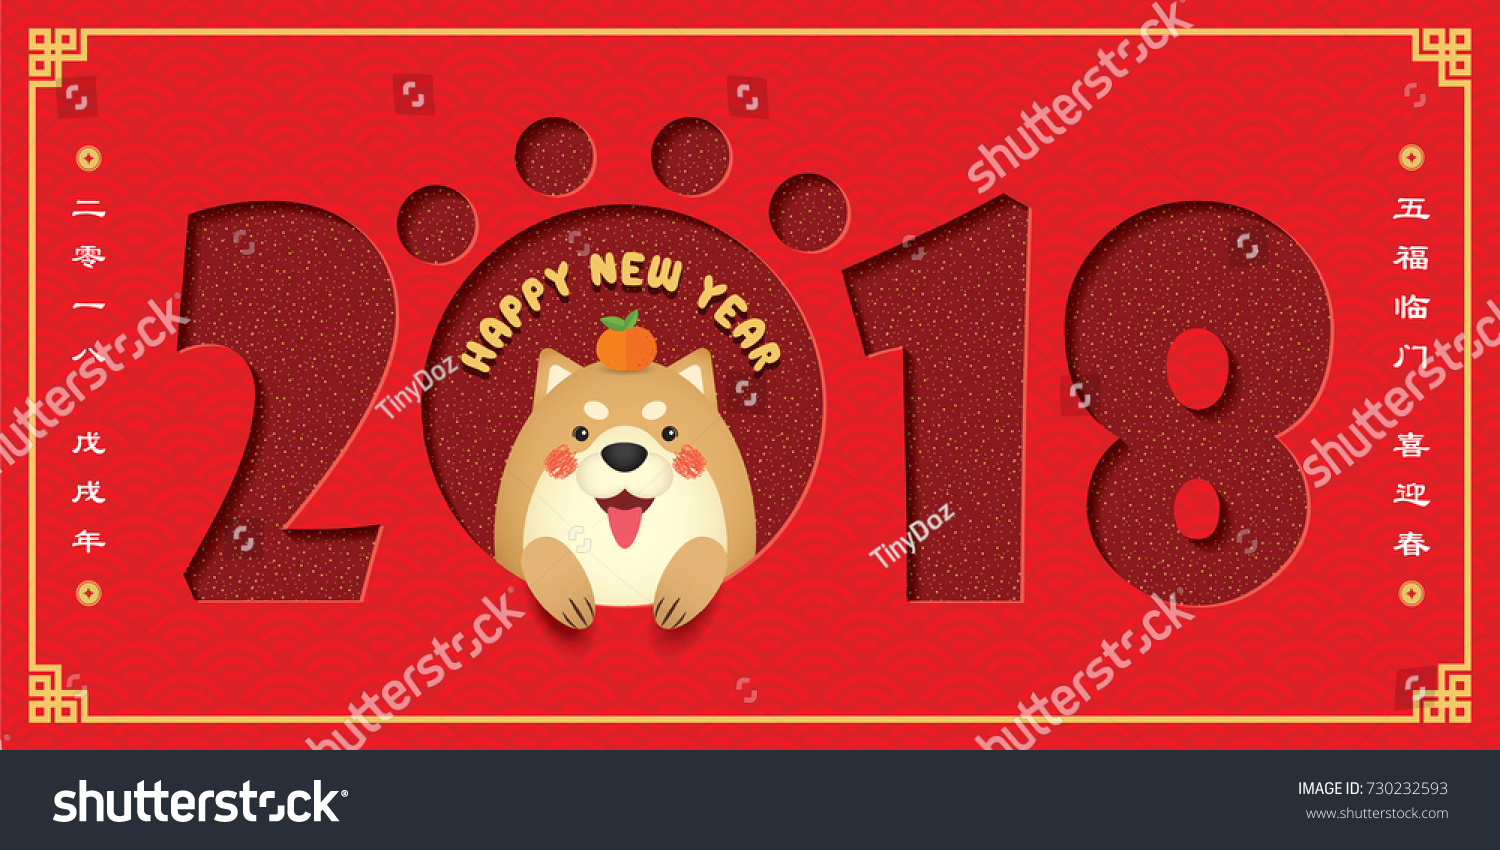 2018 chinese new year banner template design cute cartoon dog with chinese vintage design element